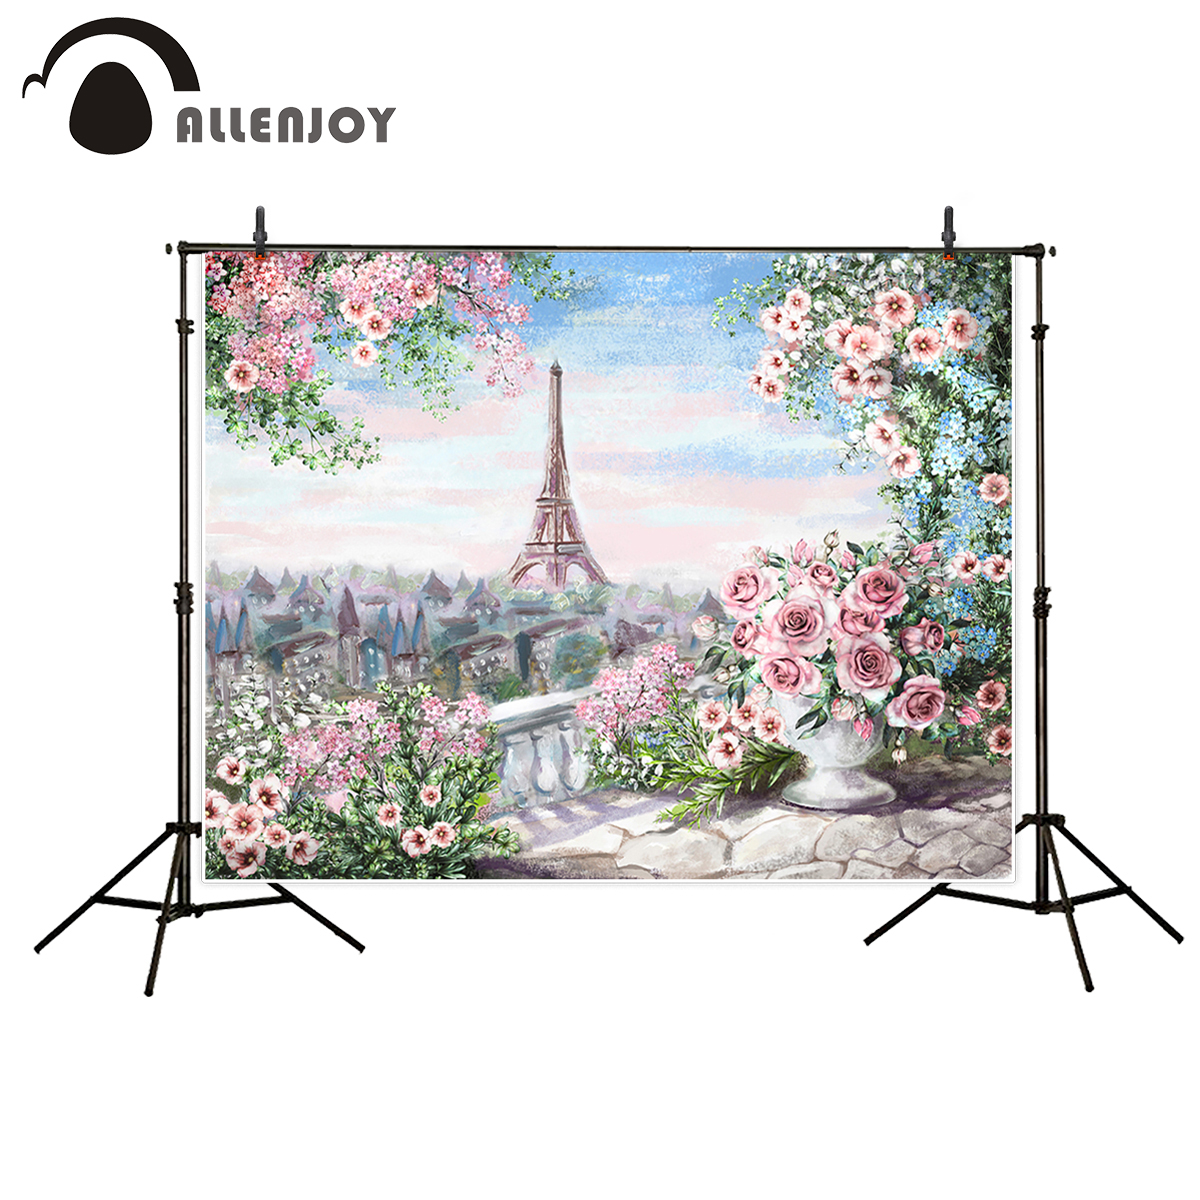 Allenjoy artistic photography with Eiffel tower background romantic aesthetic flower wedding oil painting backrop for photo call